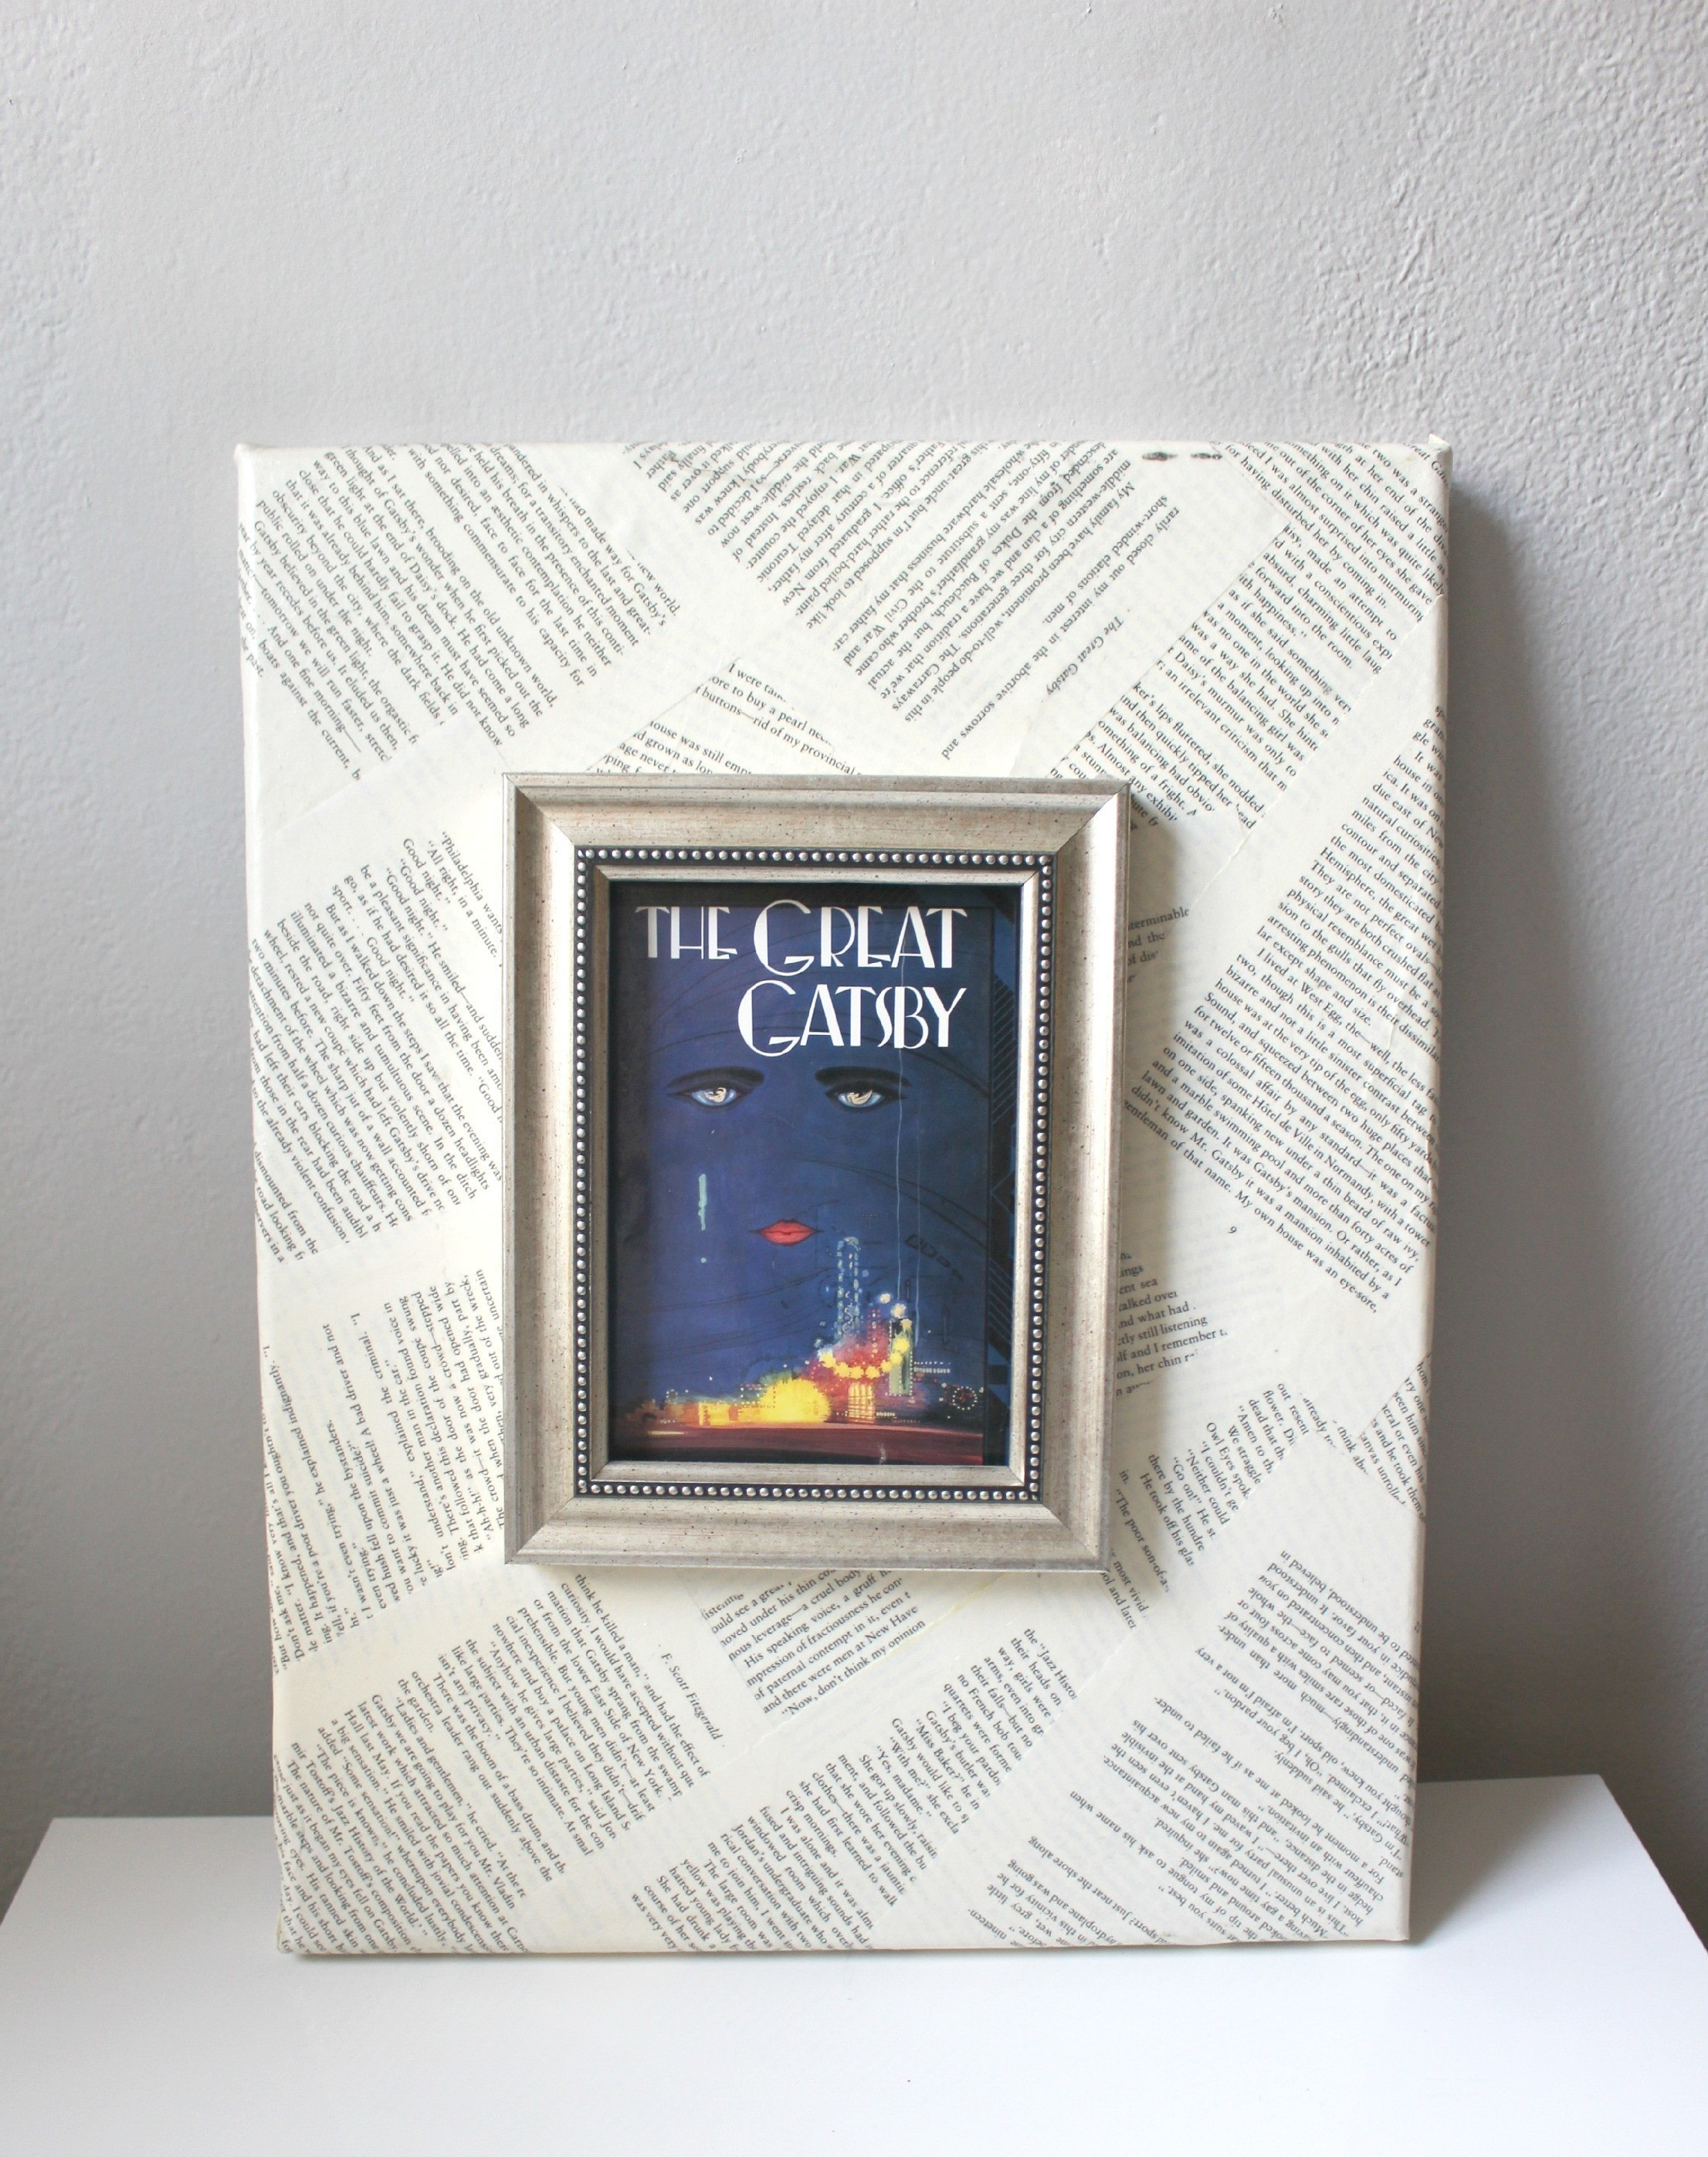 Book Page Canvas · How To Decorate A Canvas · Art on Cut Out + Keep